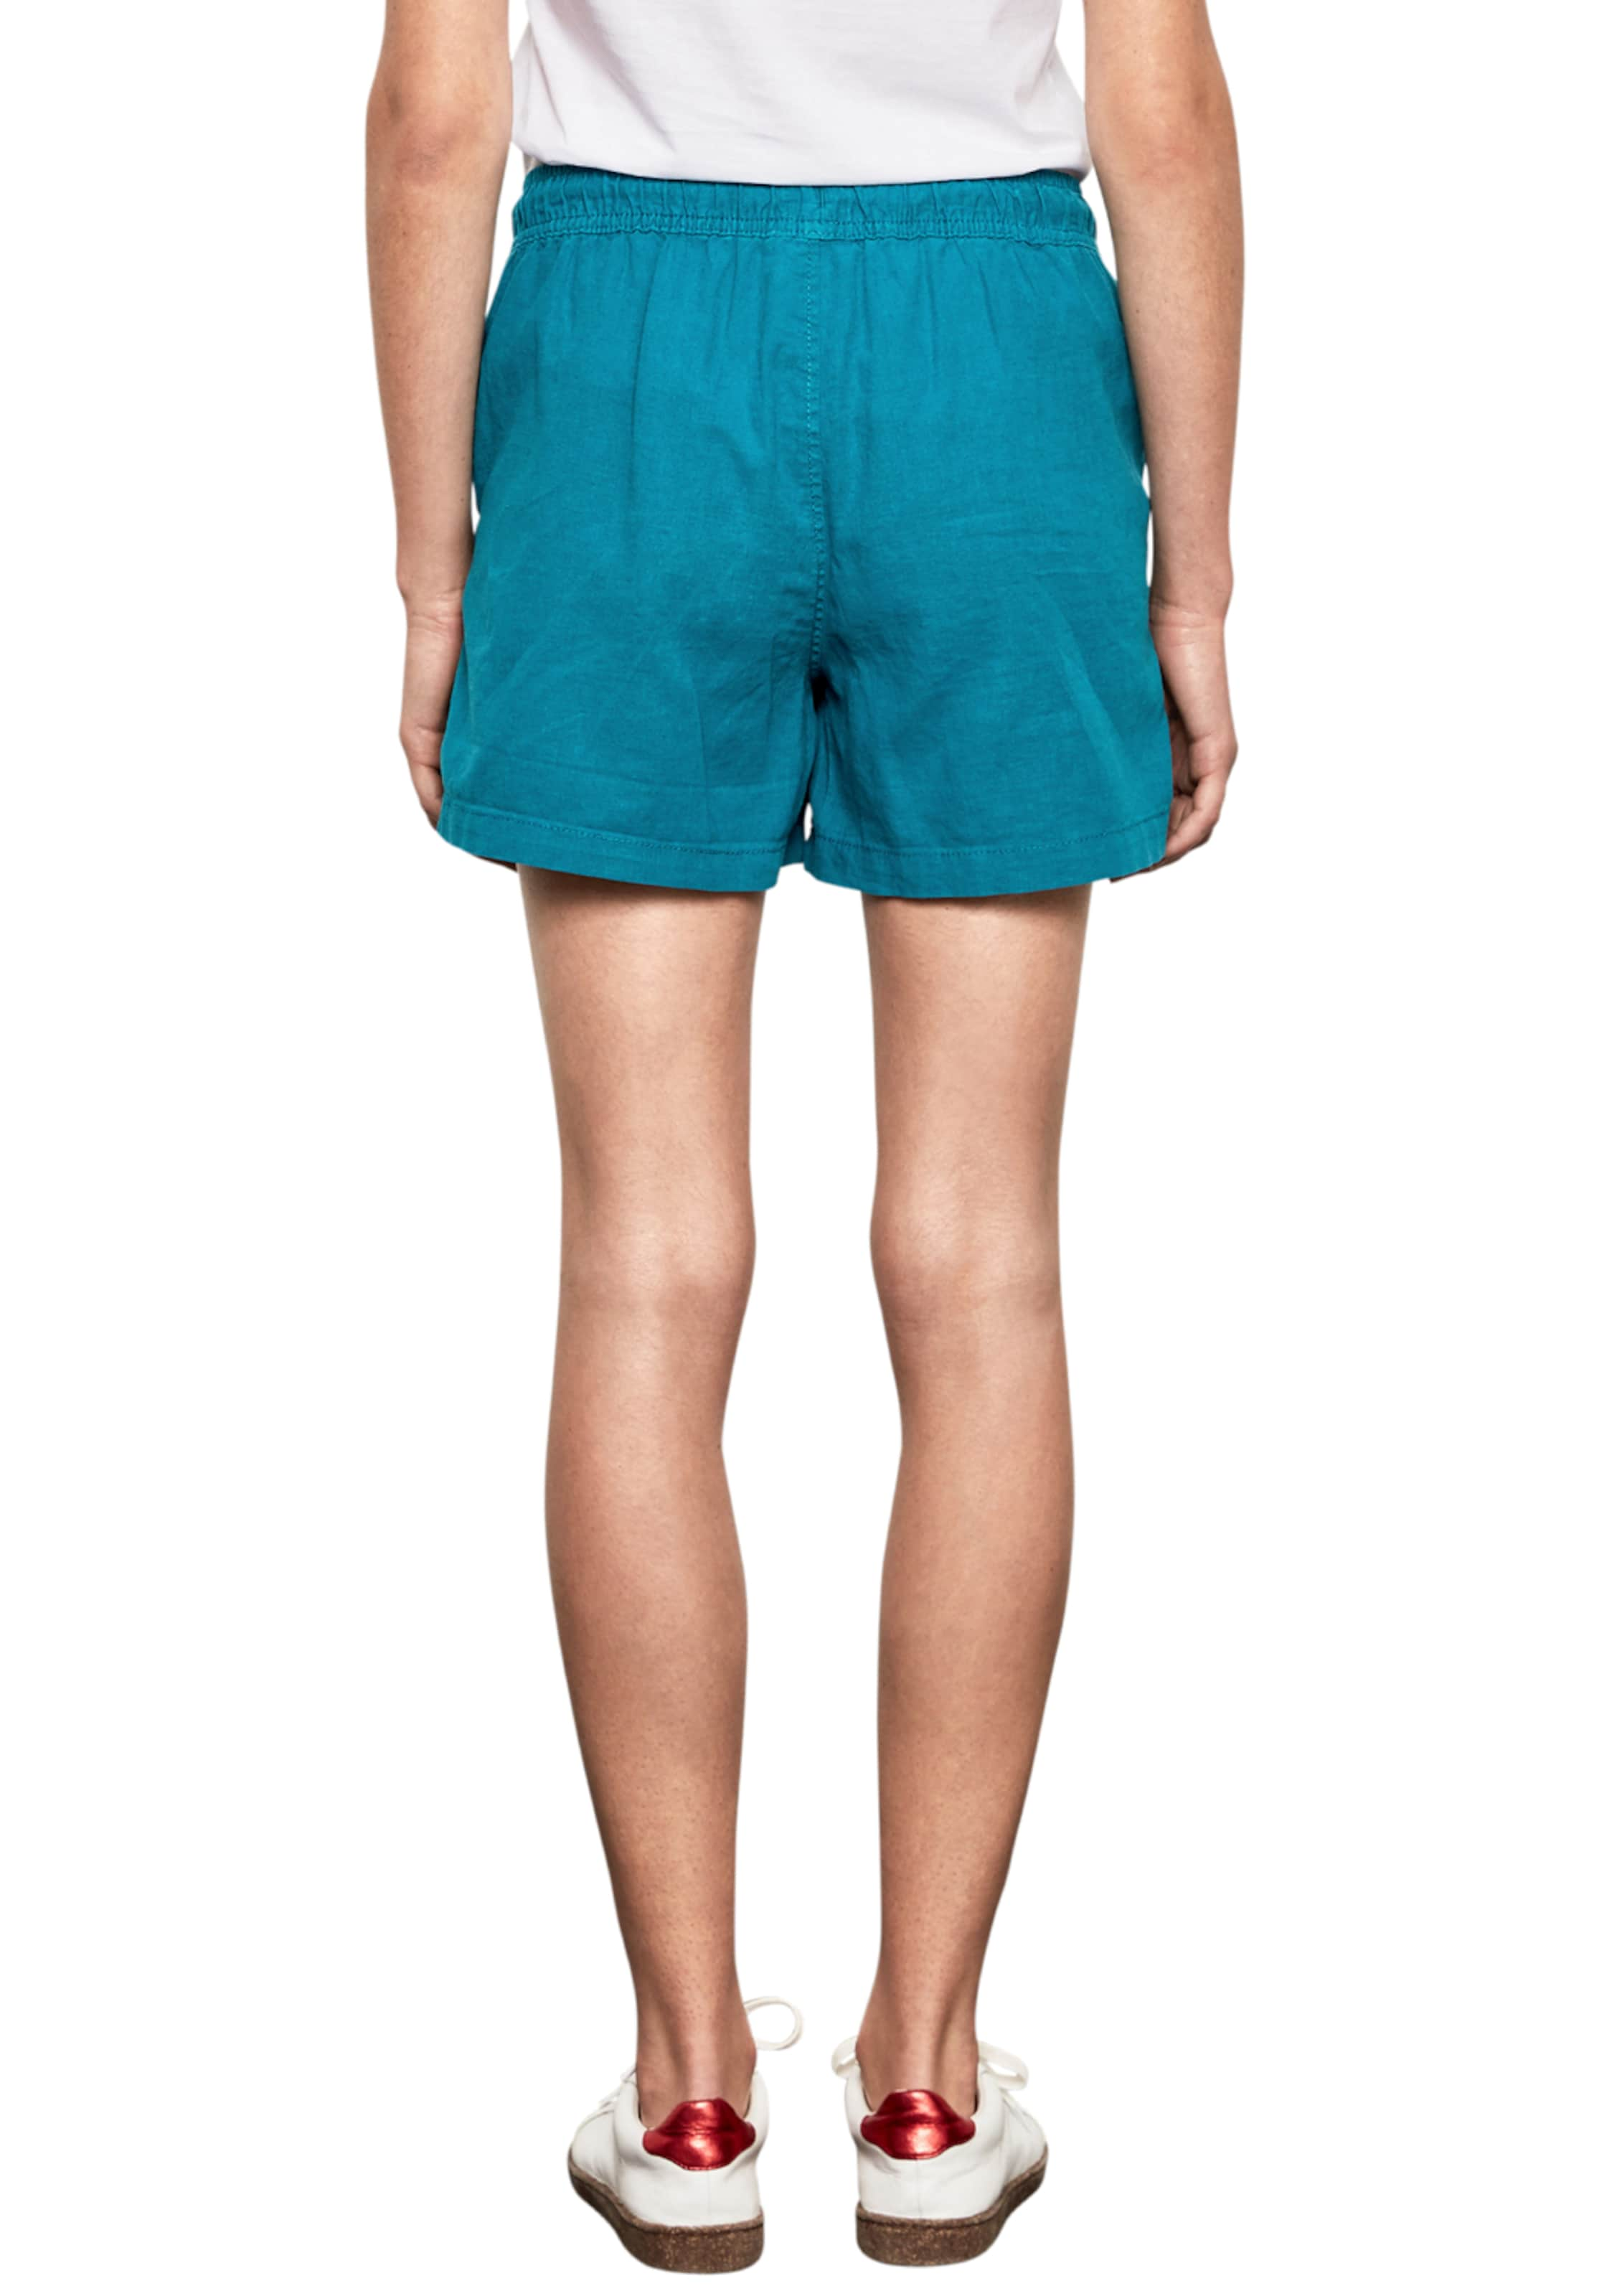 Designed In s Pastellblau Shorts Q By cRLj35q4A